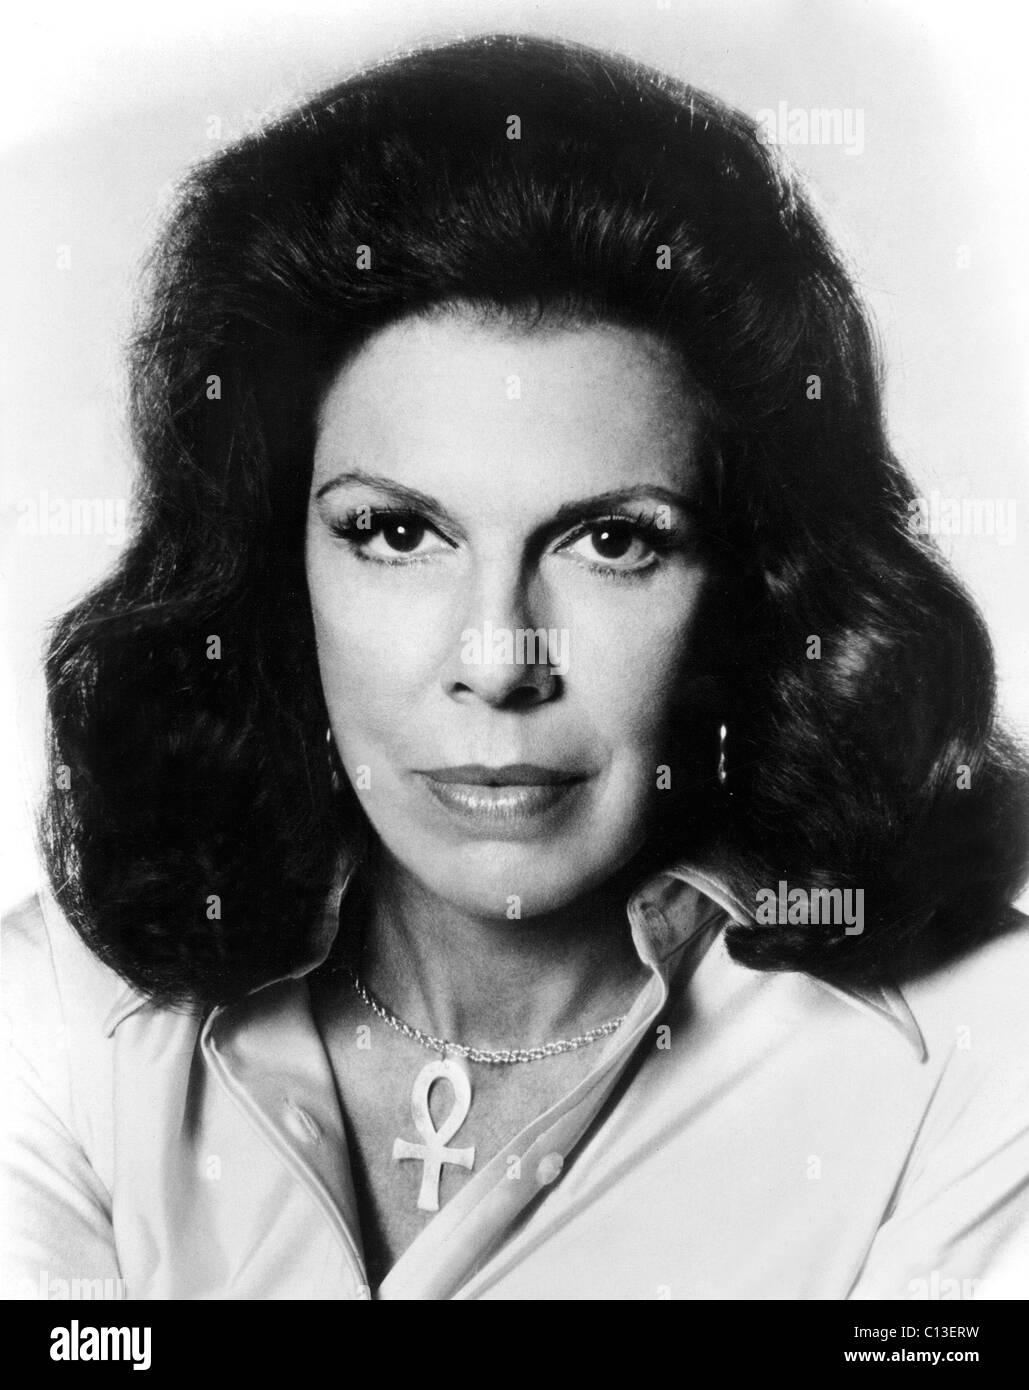 JACQUELINE SUSANN, 1973 Stock Photo